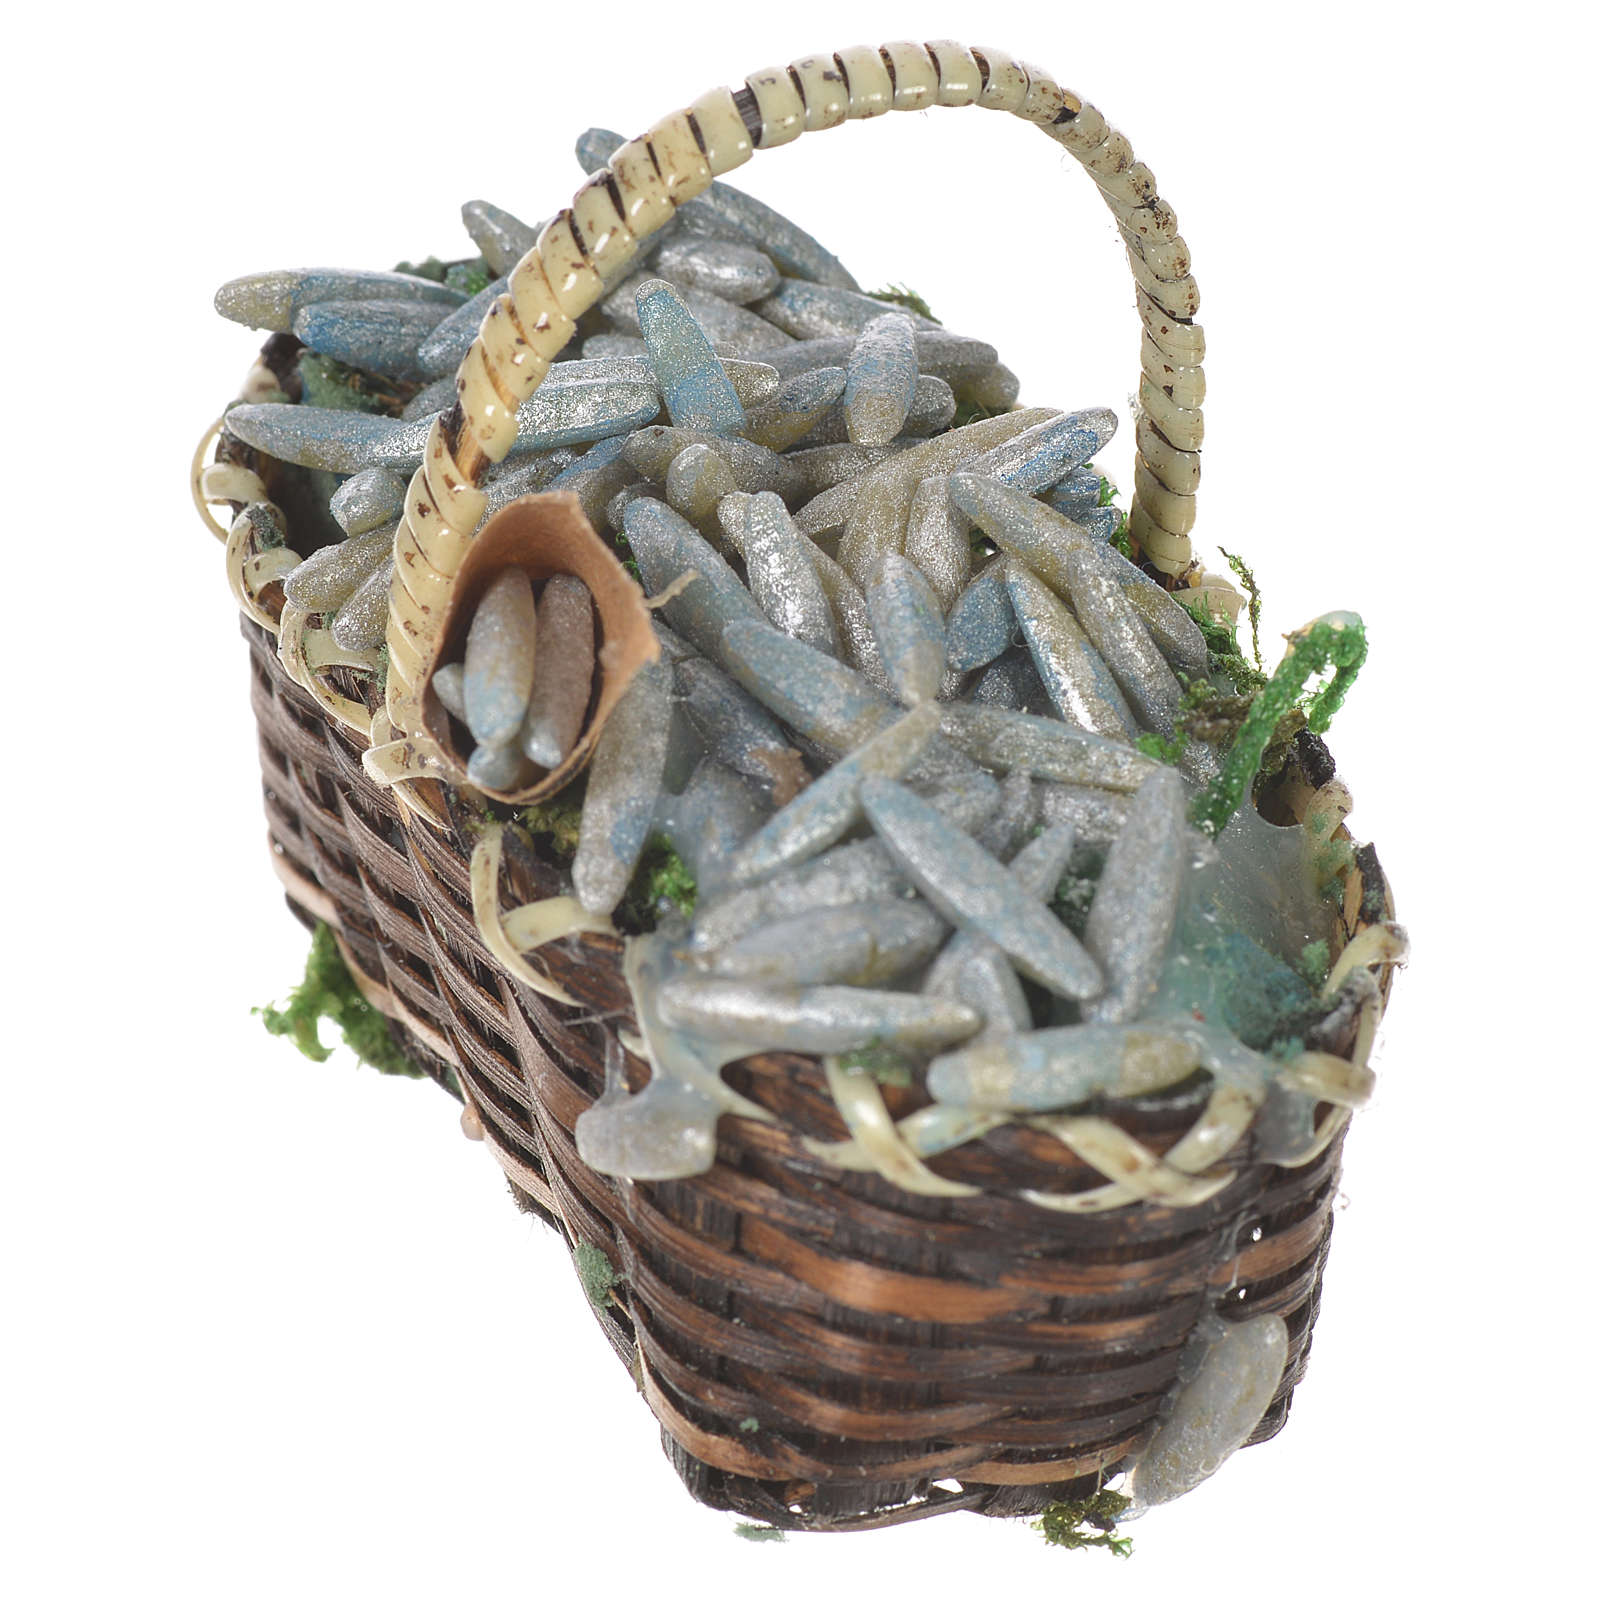 Accessory for nativities of 20-24cm, basket with sardines in wax 4